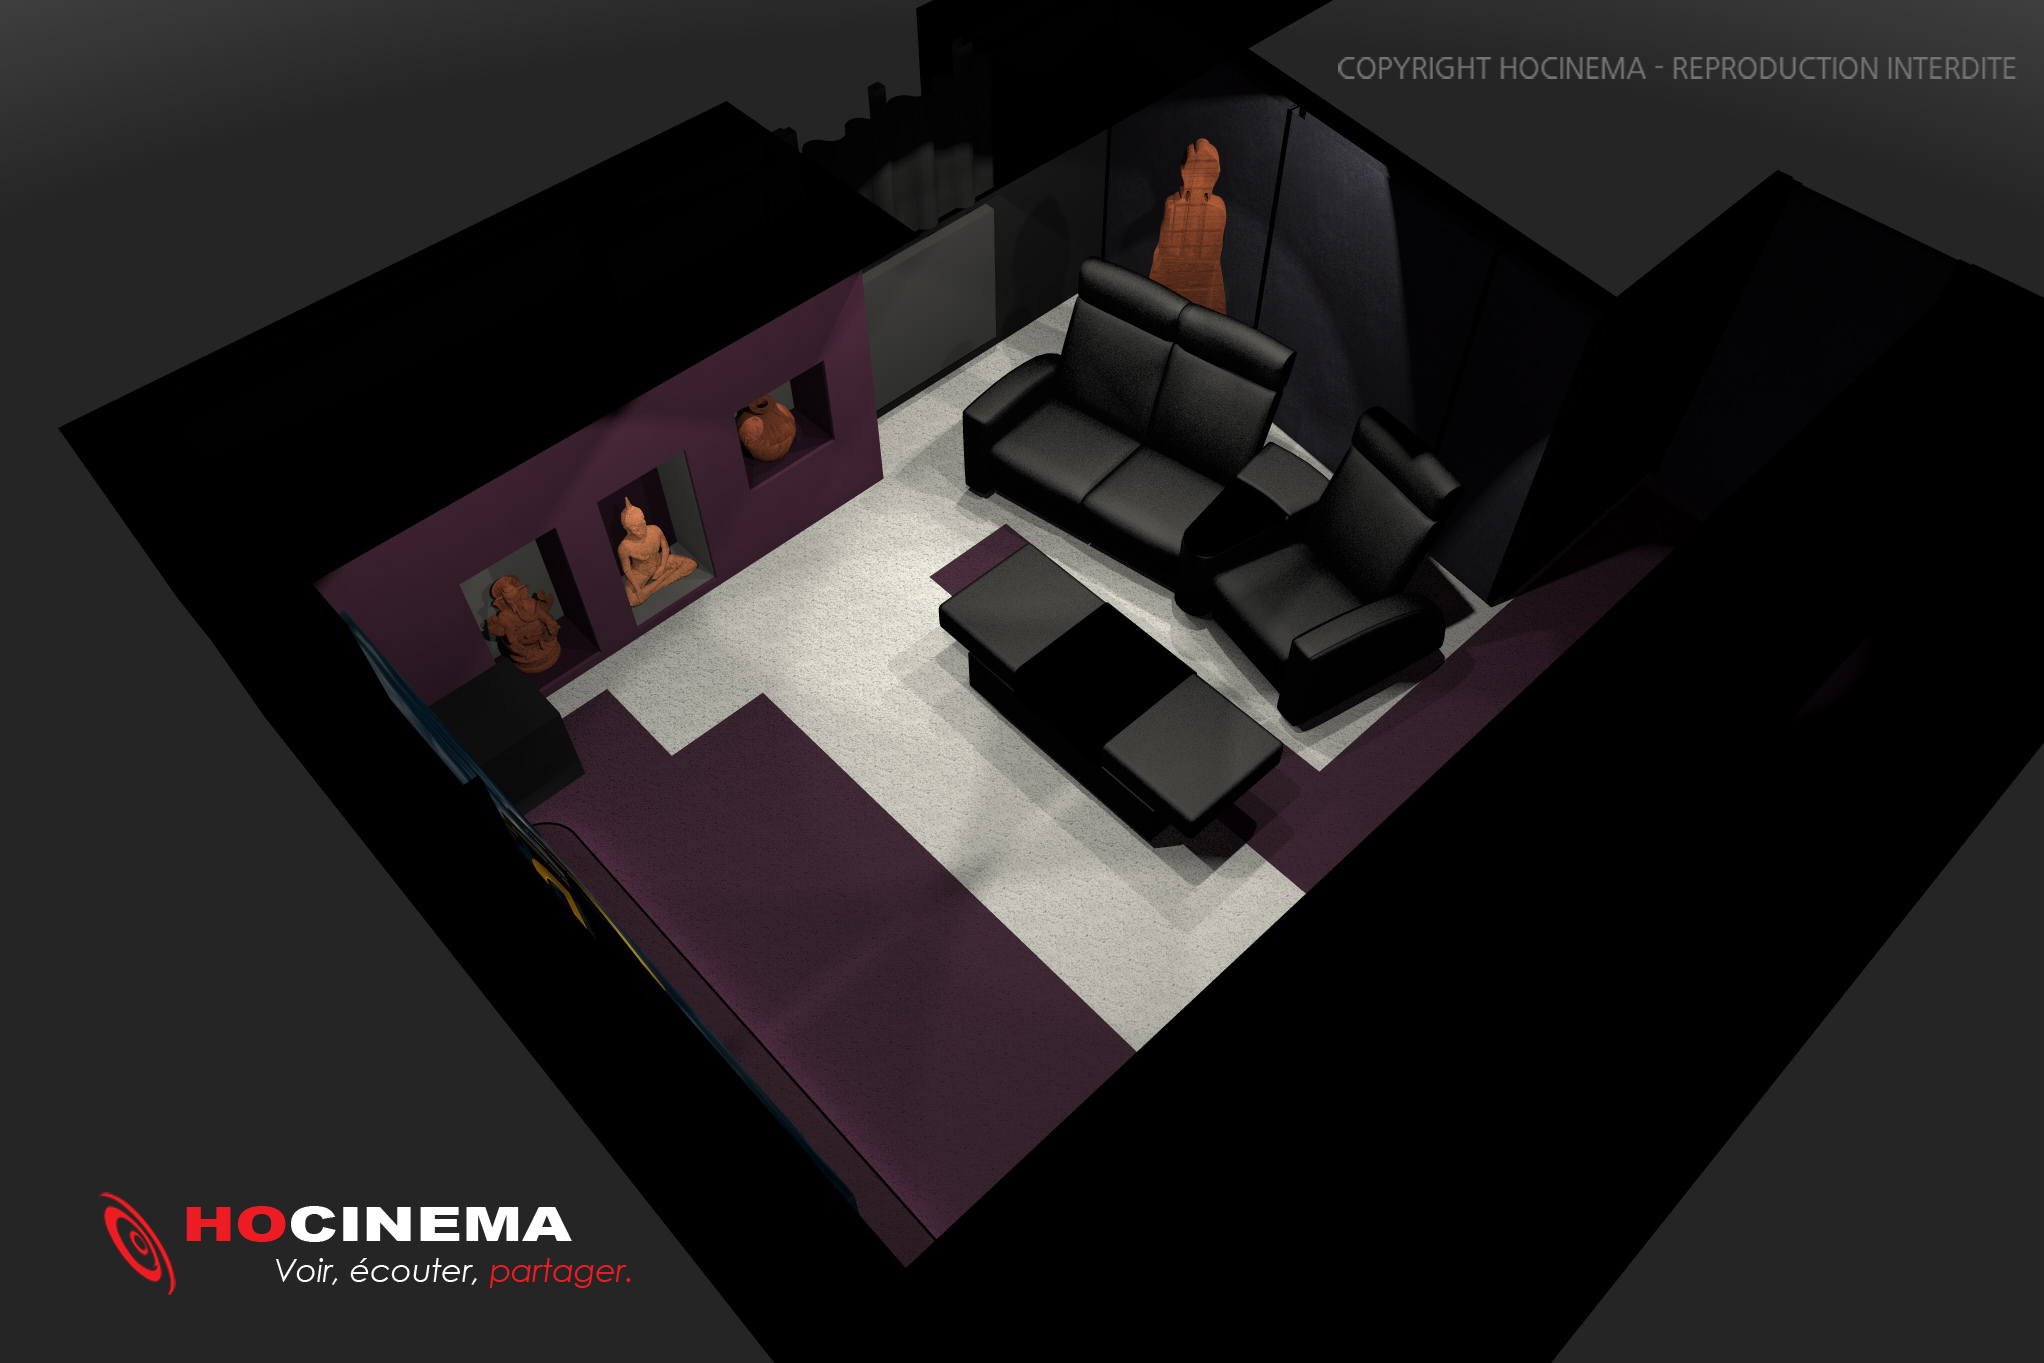 salle cinma maison salle cinema maison conceptd with. Black Bedroom Furniture Sets. Home Design Ideas